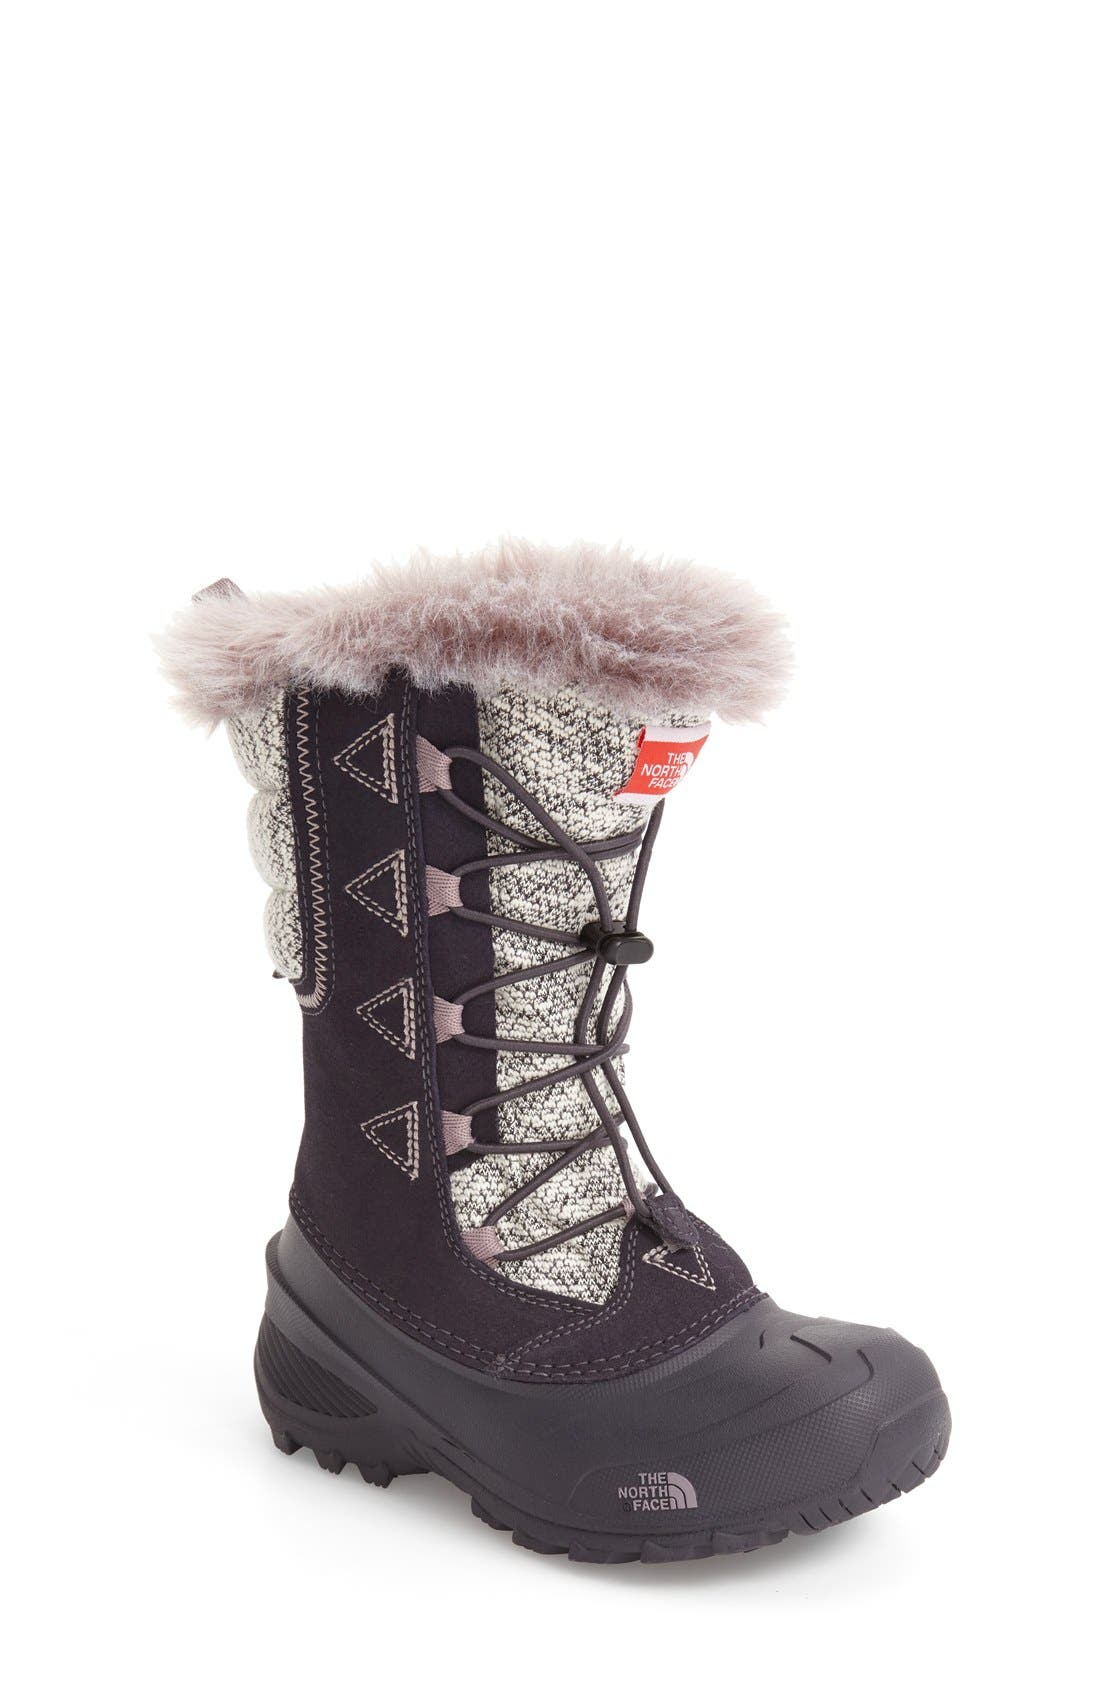 Alternate Image 1 Selected - The North Face Shellista Lace II Waterproof Boot (Toddler, Little Kid & Big Kid)